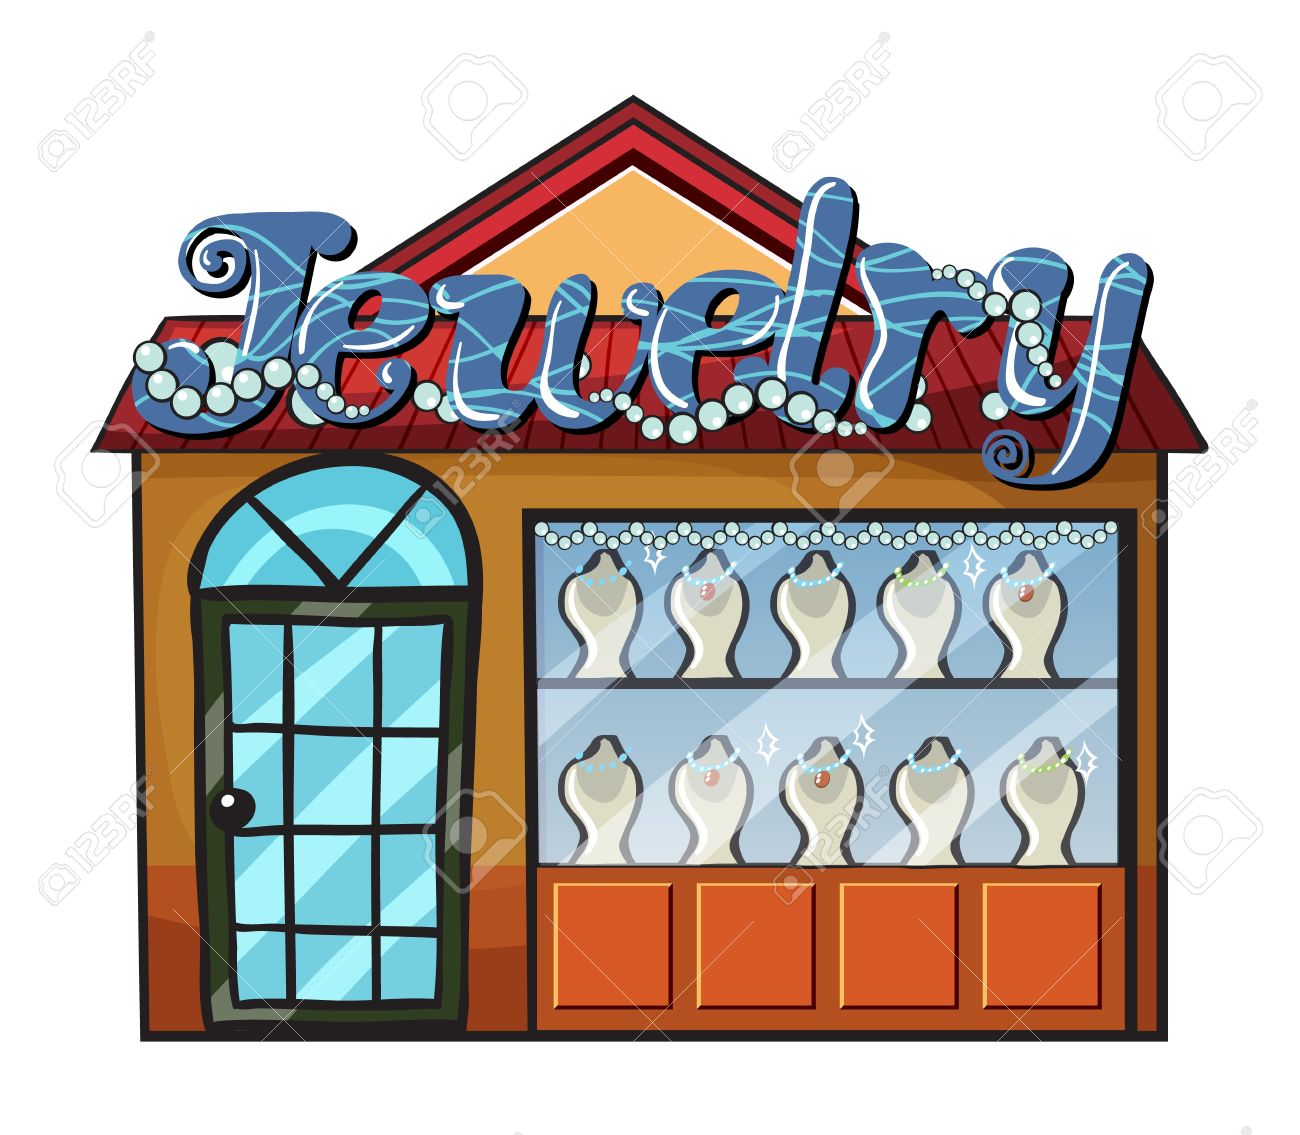 Illustration of a jewelry shop on a white background Stock Vector - 17082546